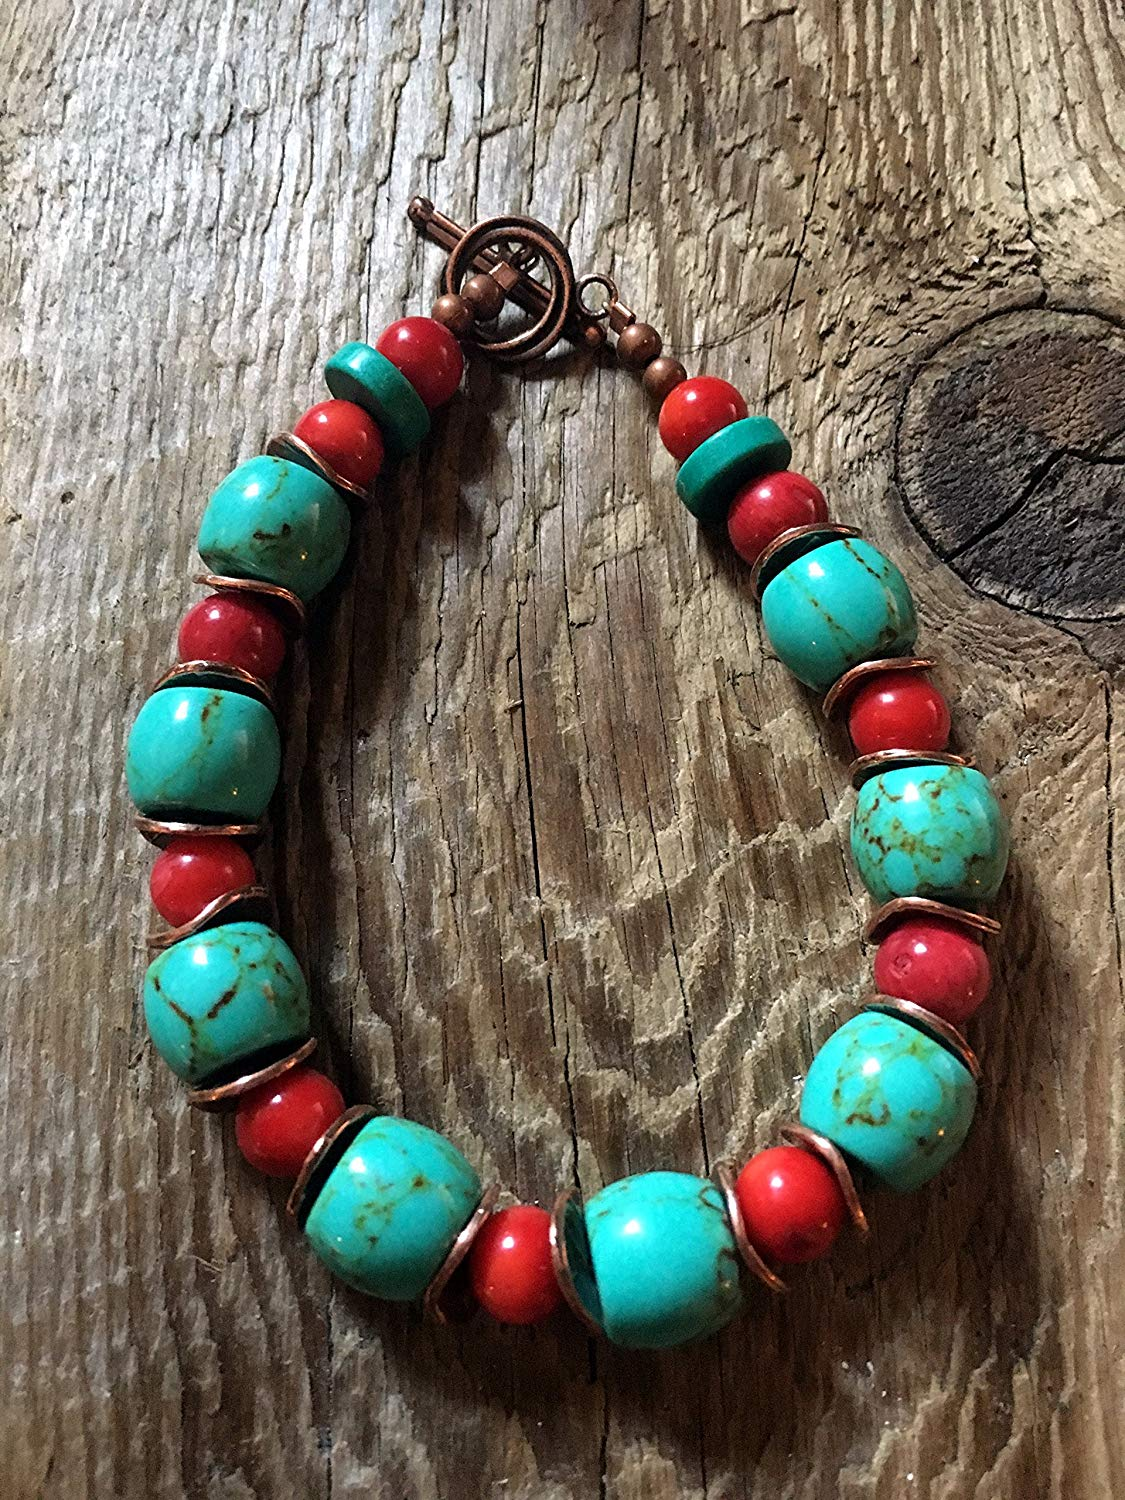 Turquoise Bracelet - Large Turqoise Barrel Beads, Red Coral Ball Beads with Wavy Brushed Copper Disc Spacers and a Swirl Copper Toggle Clasp